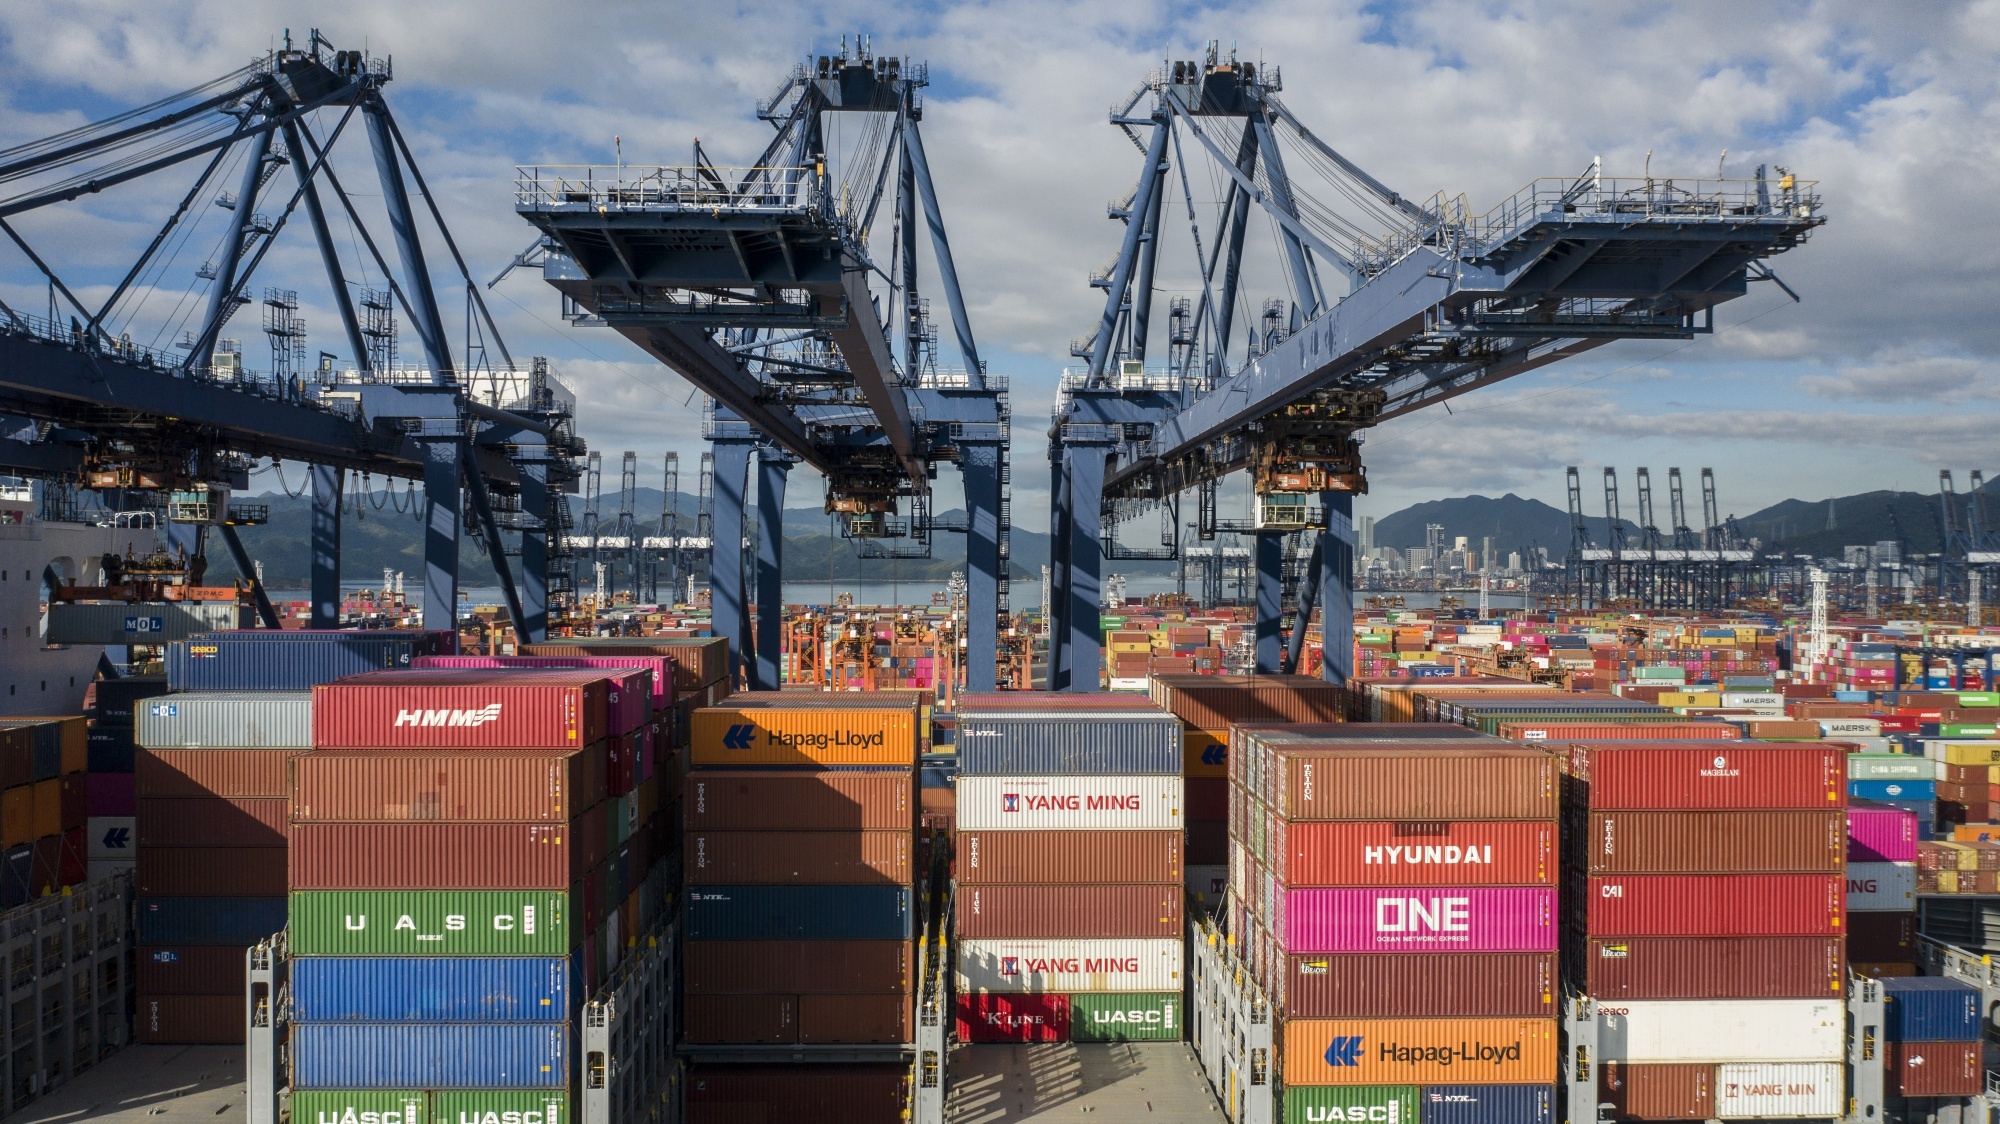 One of World's Top Ports Expects Delays on China Covid Outbreak - Bloomberg